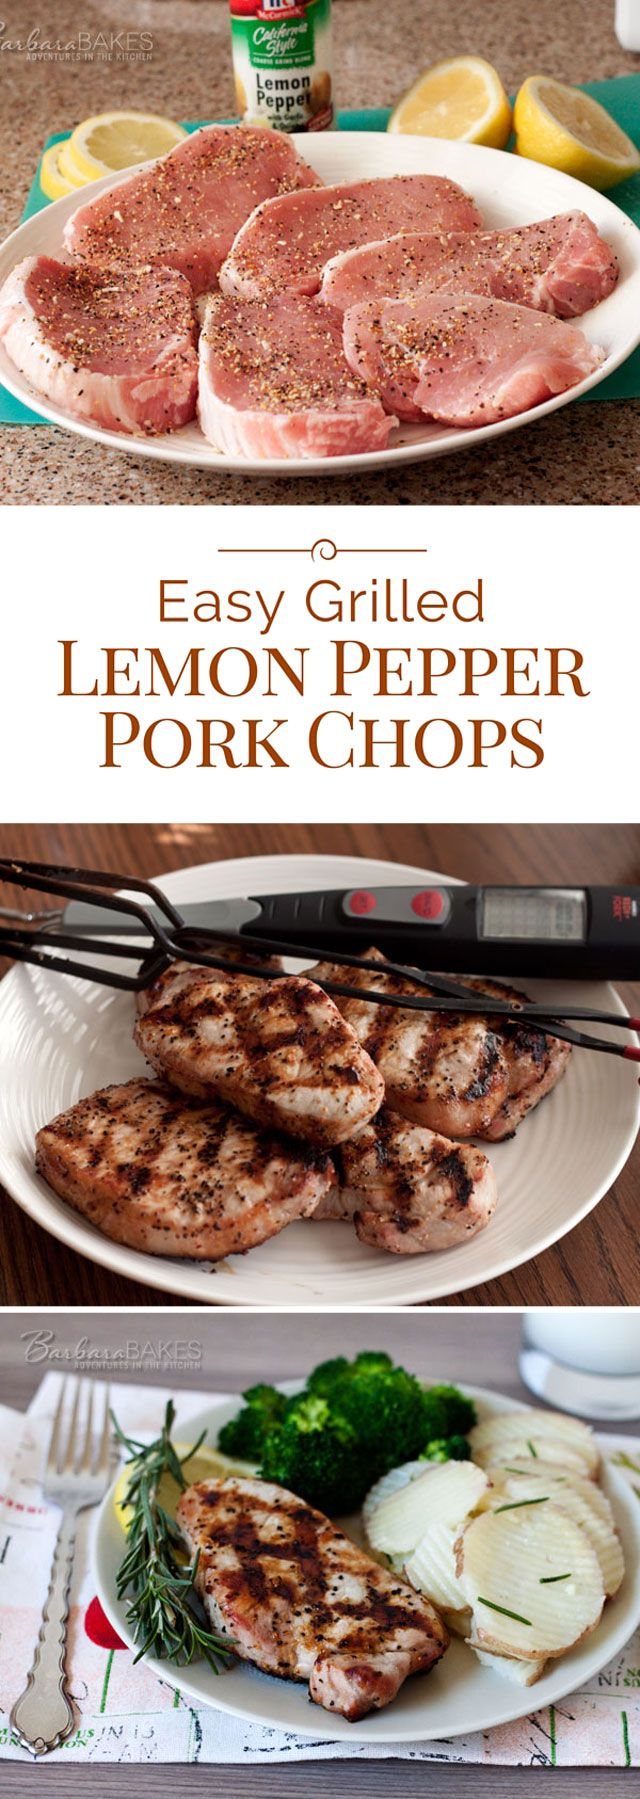 Different ways to cook pork chops - Best 25 Boneless Pork Chops Ideas On Pinterest Cooking Boneless Pork Chops Pork Meals And Easy Pork Recipes